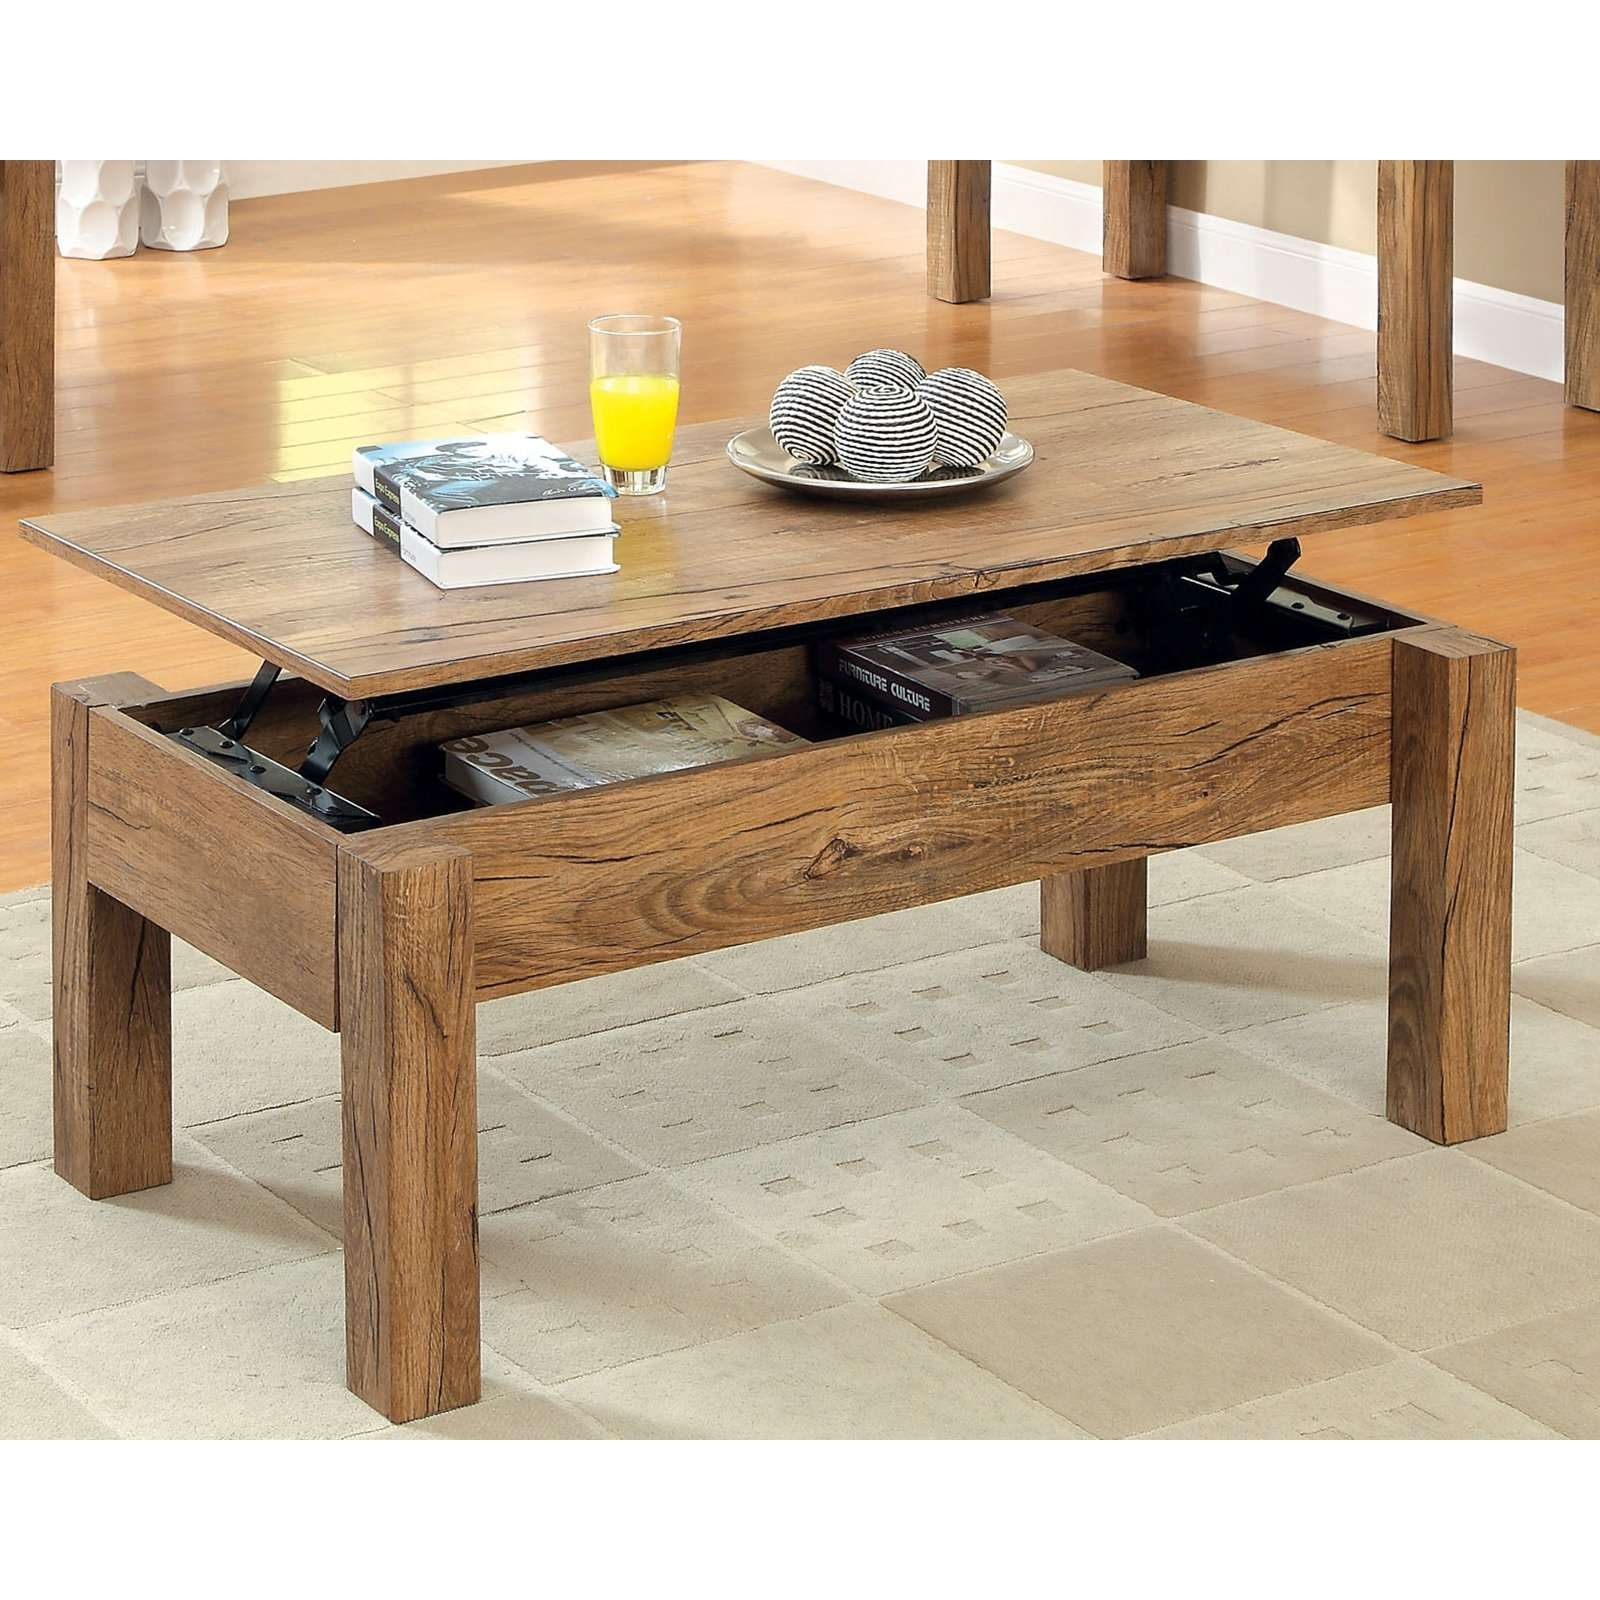 Natural Teak Wooden Lift Top Coffee Table With Four Base Leg On Inside Popular Hinged Top Coffee Tables (View 15 of 20)